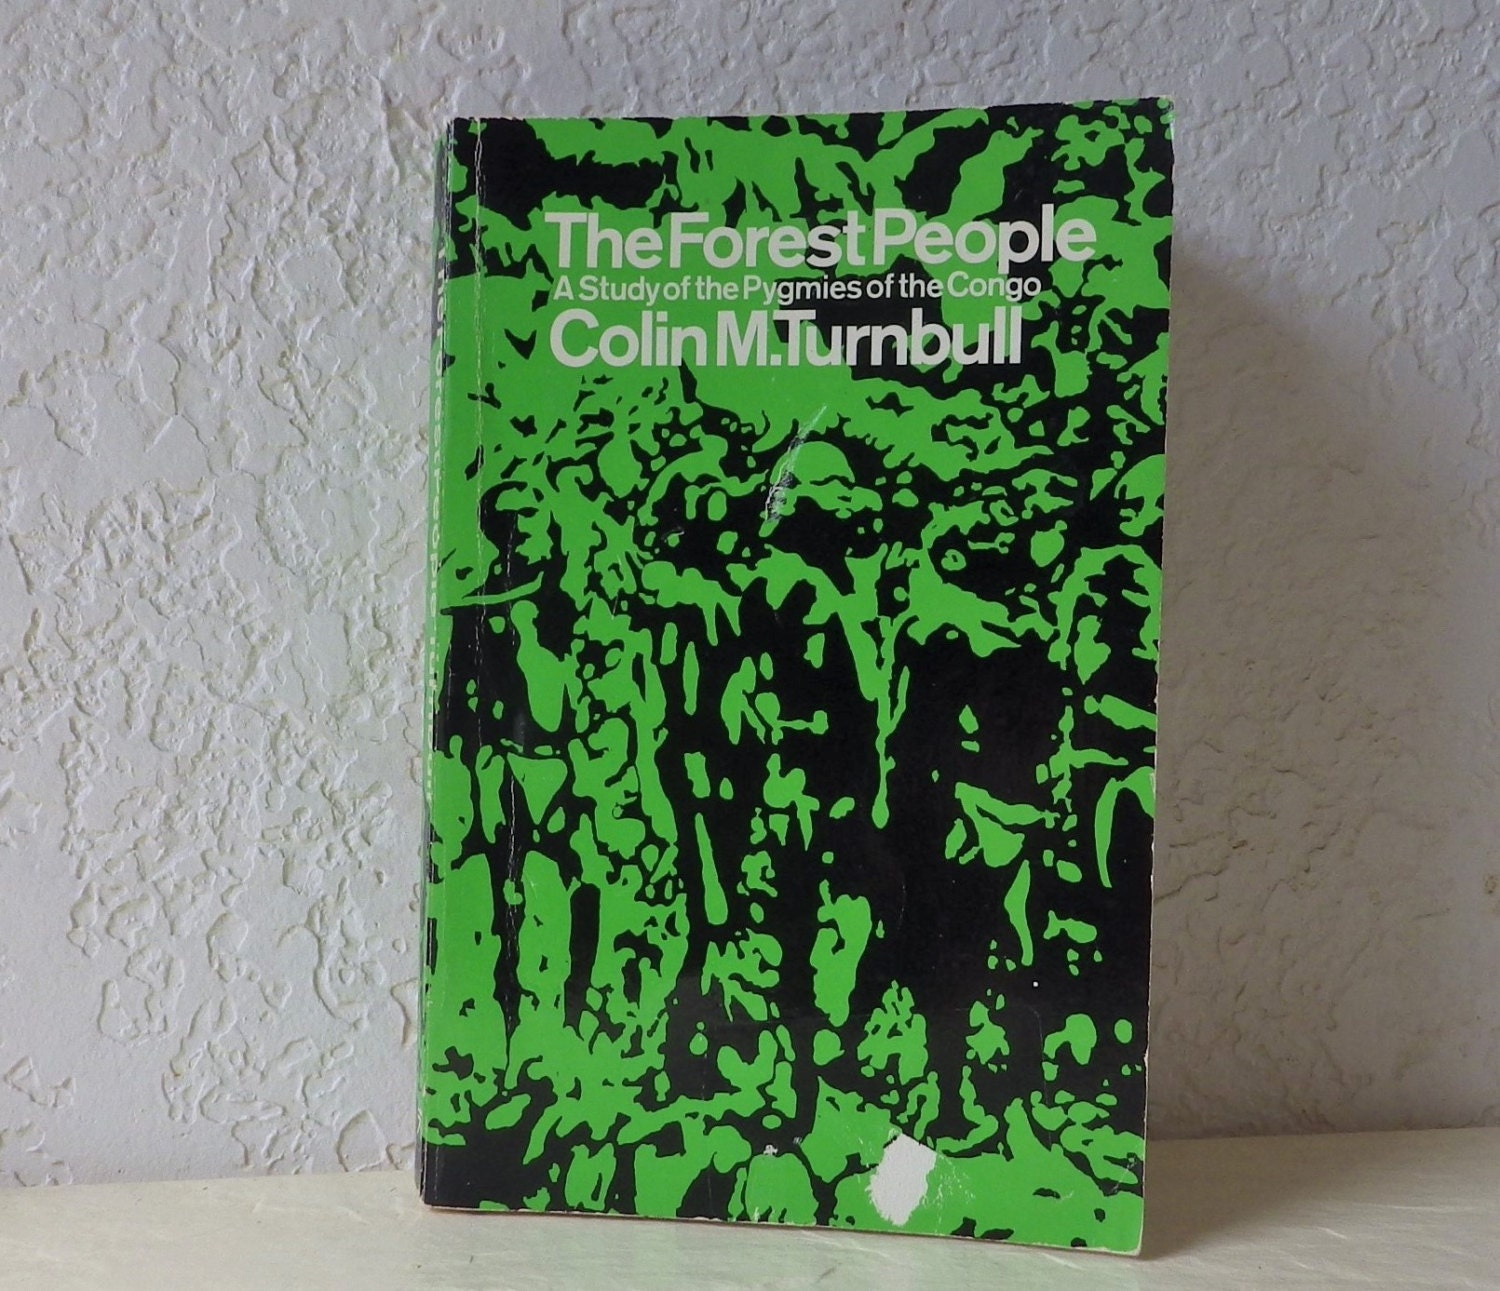 an analysis of the book the forest people by colin turnbull Essay on colin m turnbull's book the forest people analysis  in colin m turnbull's book the forest people there were many examples of theoretical approaches.